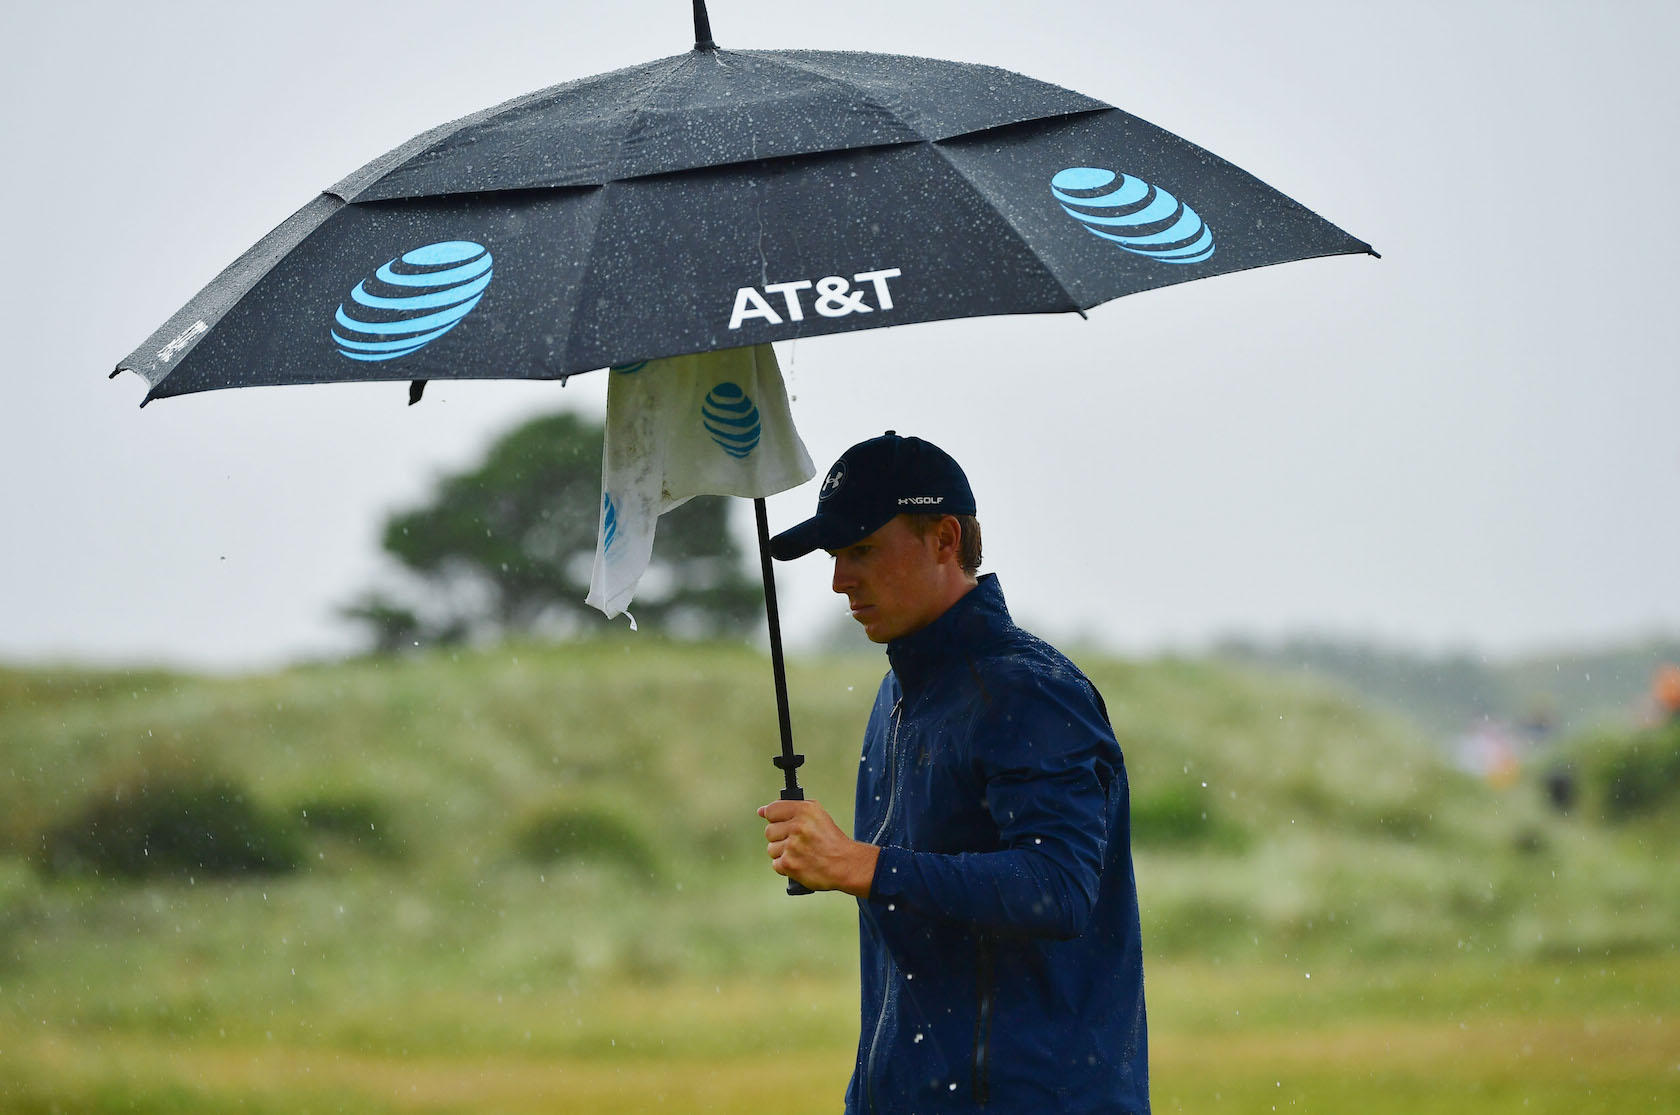 2017 Open Championship: Round 2 - 8th Hole Rain